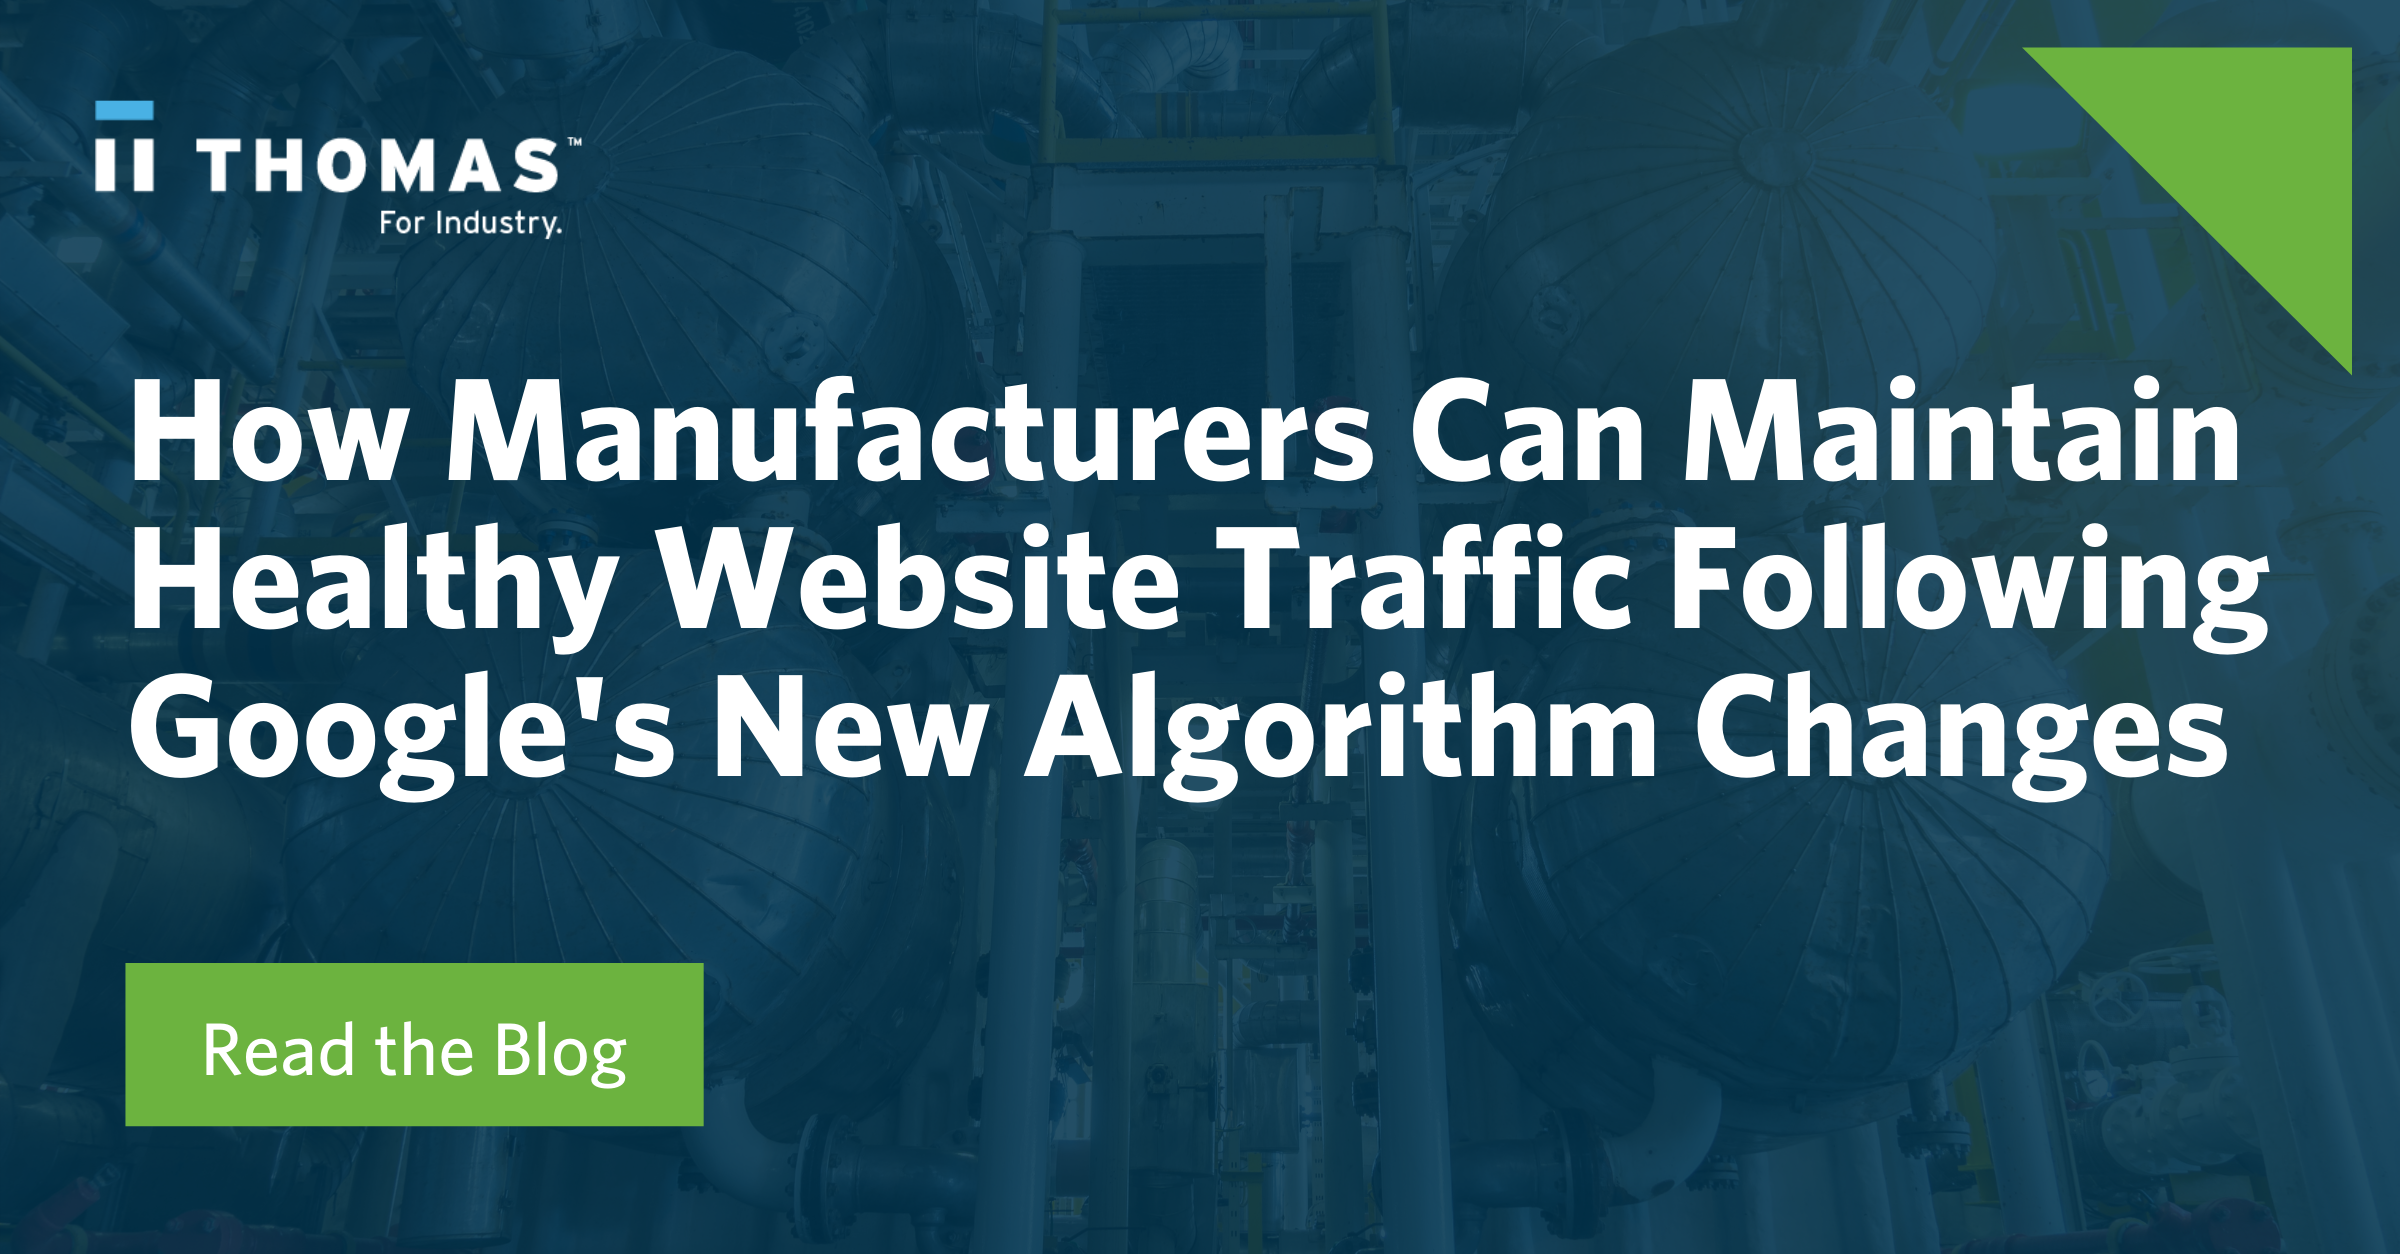 How Manufacturers Can Maintain Healthy Website Traffic Following Google's New Algorithm Changes